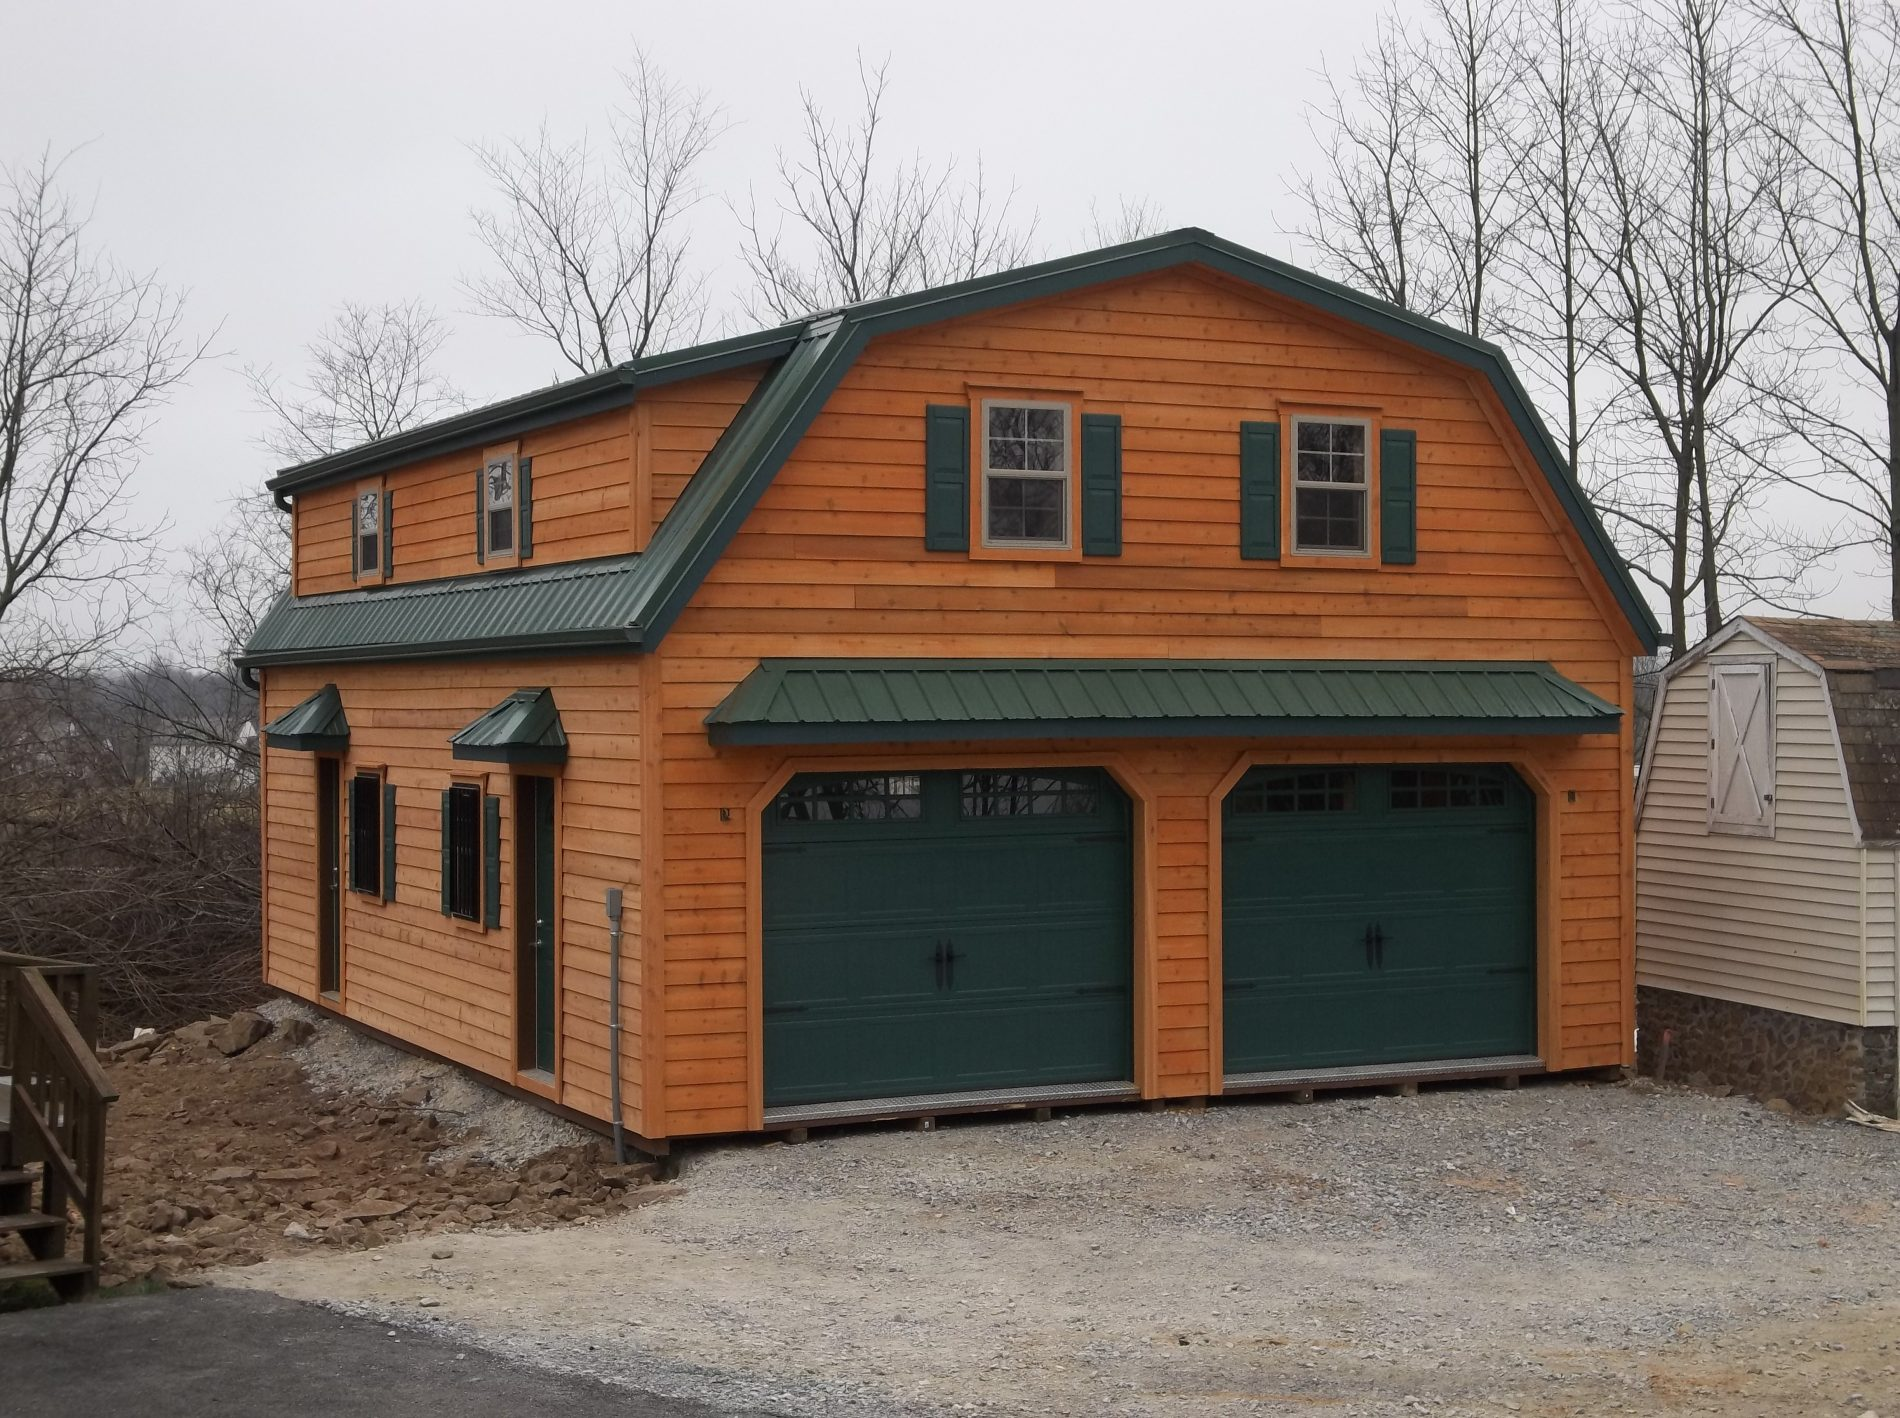 Custom garage builders prefab garages for sale zook cabins for Two story garages for sale